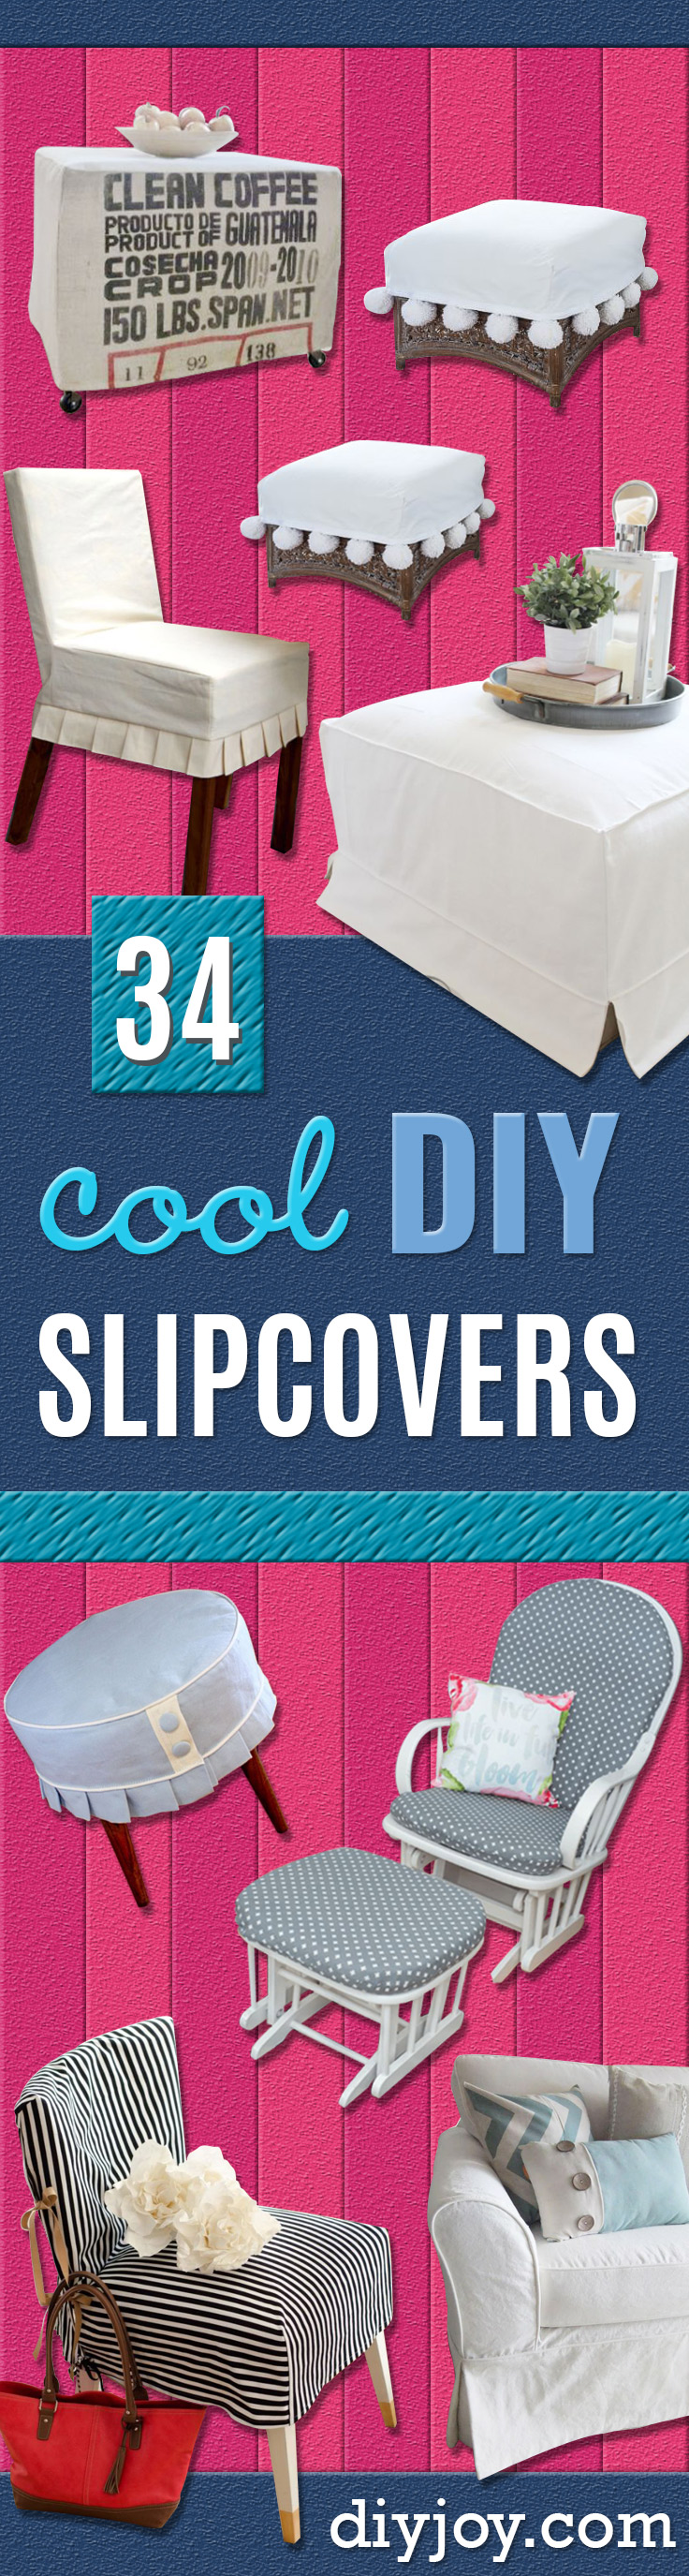 9 DIY Slipcovers For Chairs, Couches and More